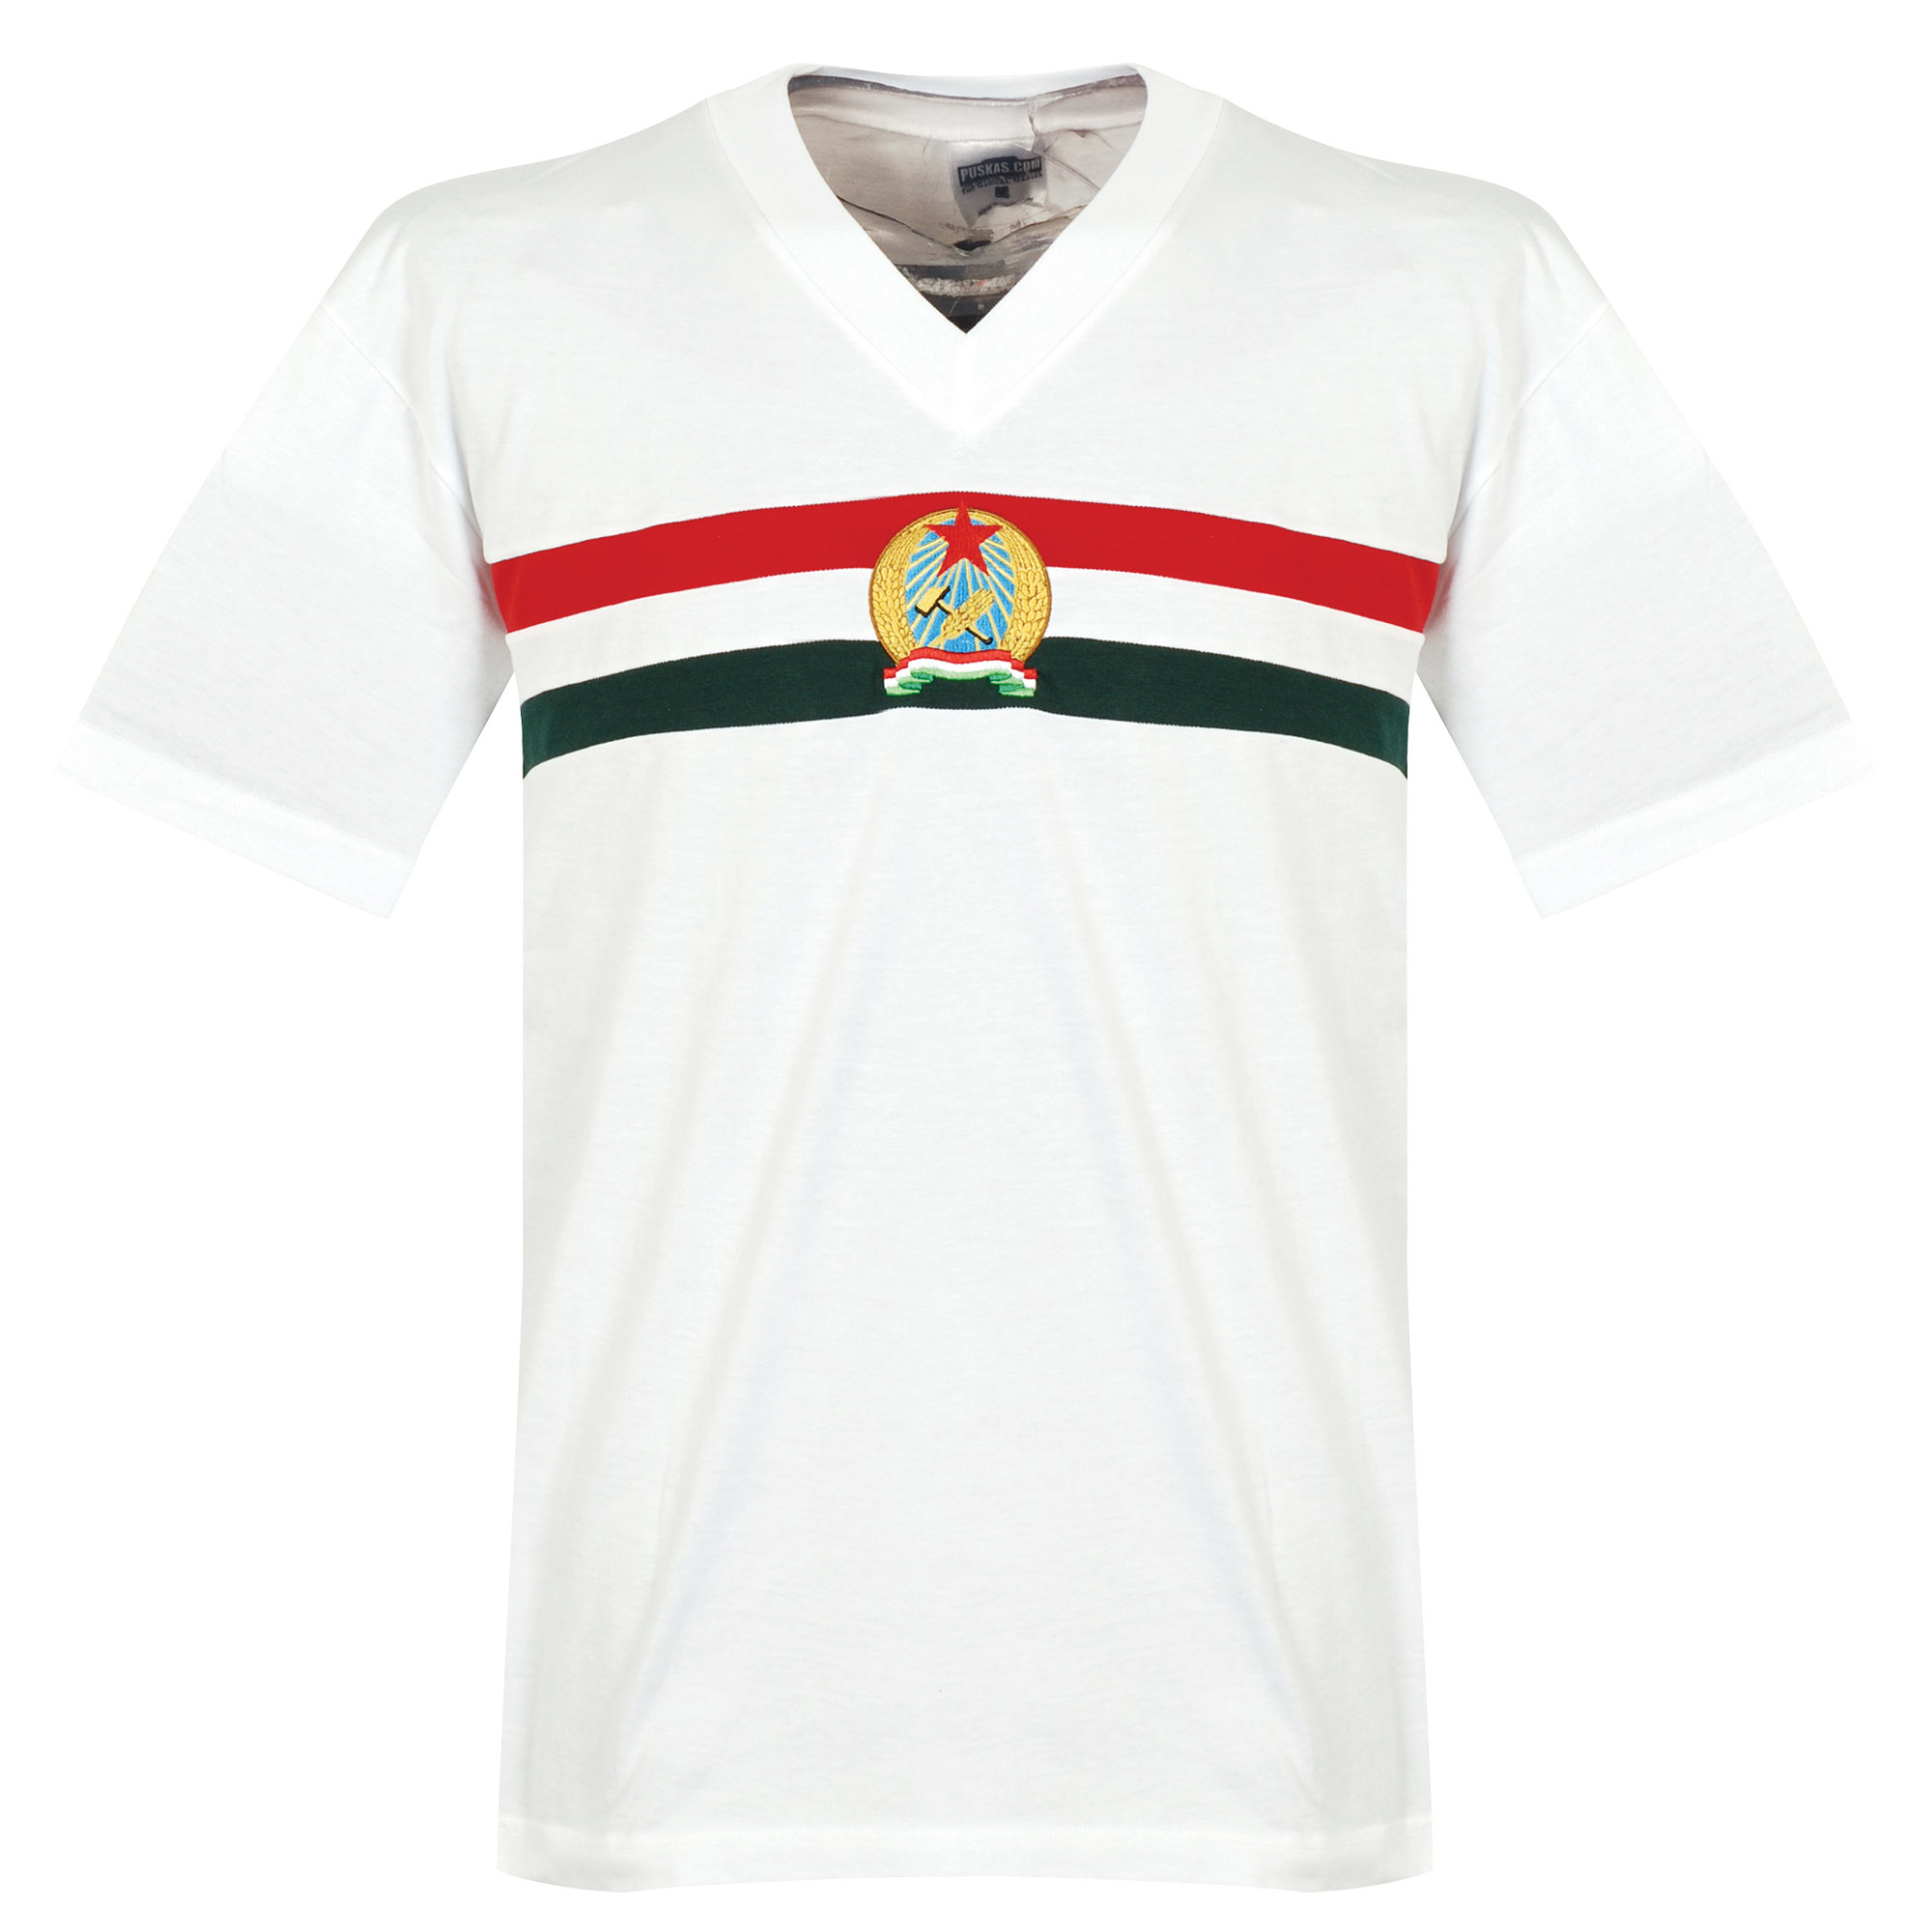 Retro Hungary Shirt